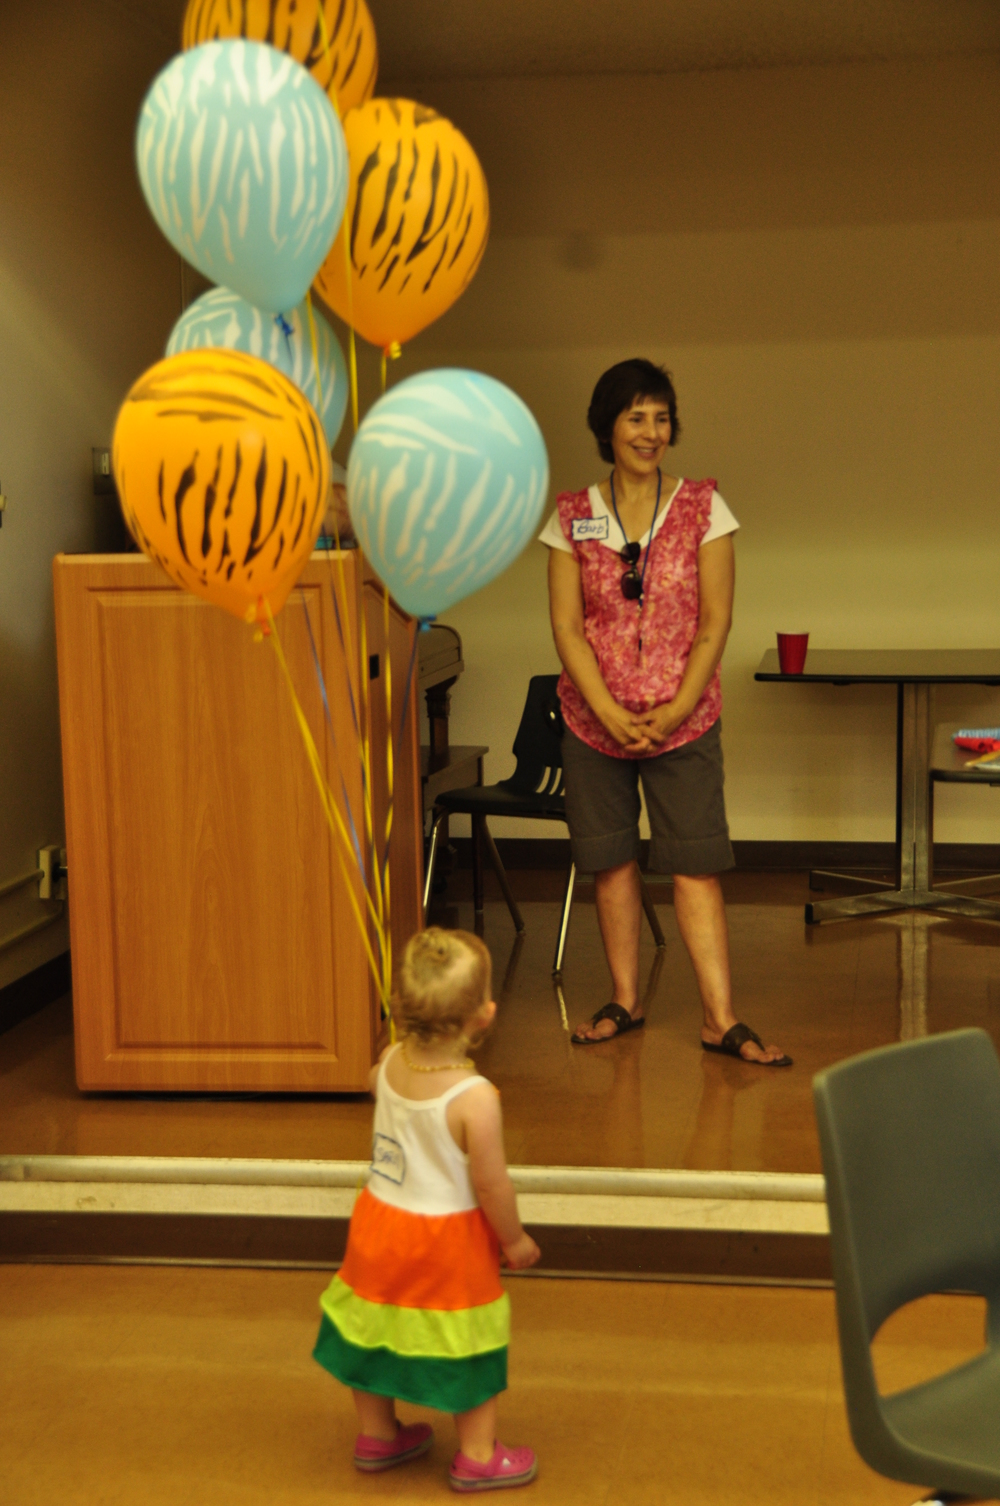 Barb girl and balloonsEdmpicnic2015.jpg